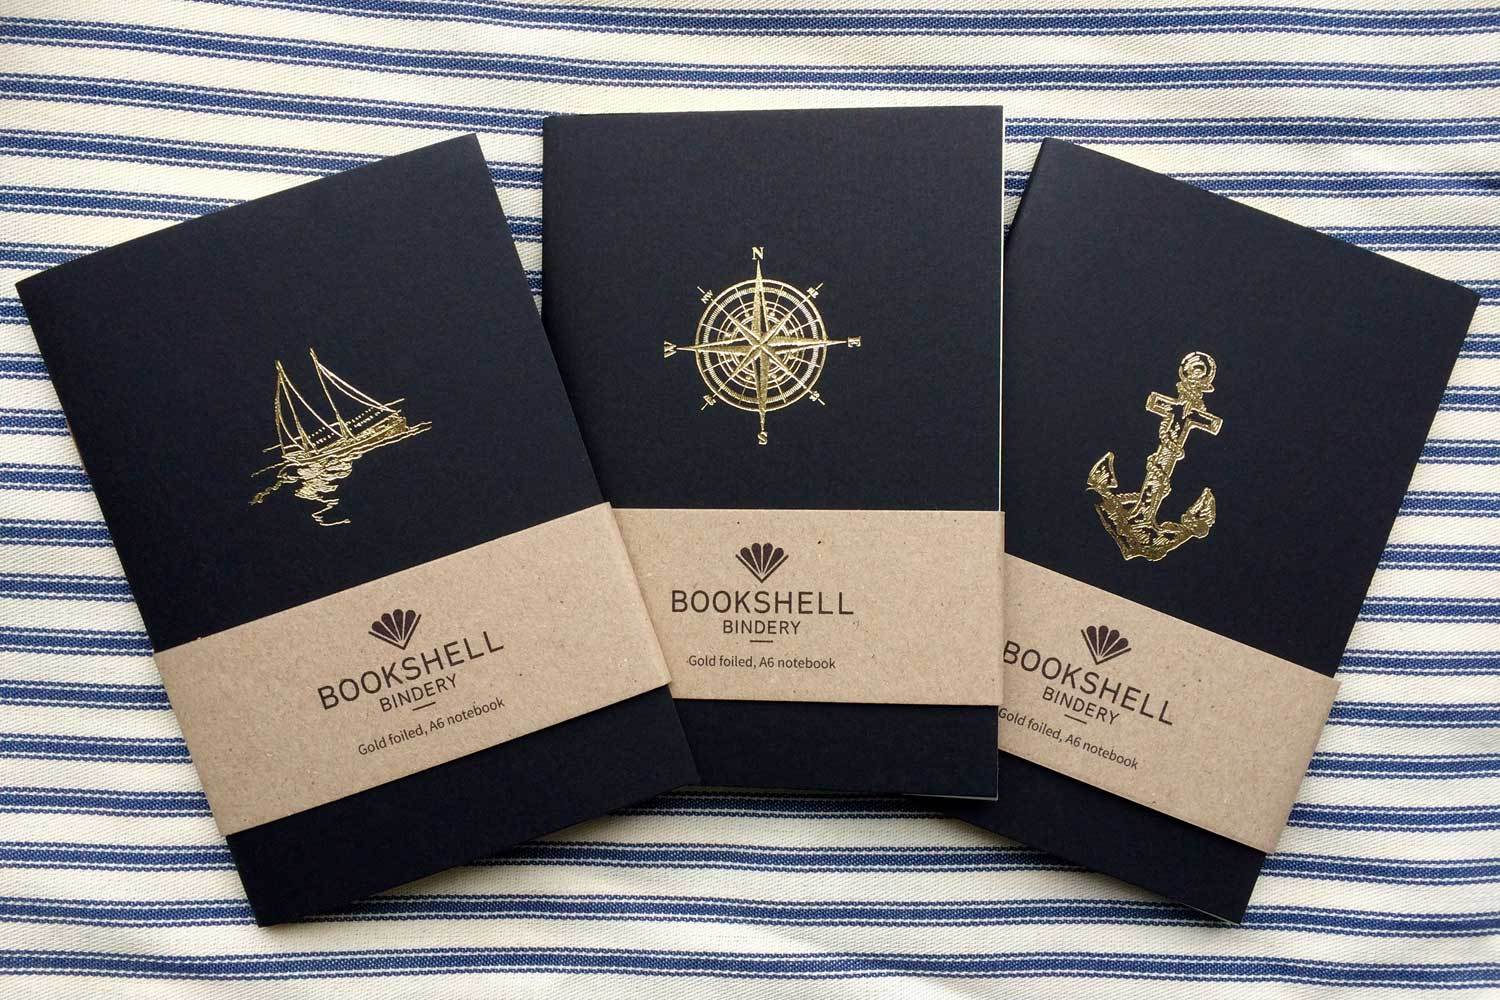 Pocket notebook with choice of gold foil picture from Bookshell, boat, compass or anchor